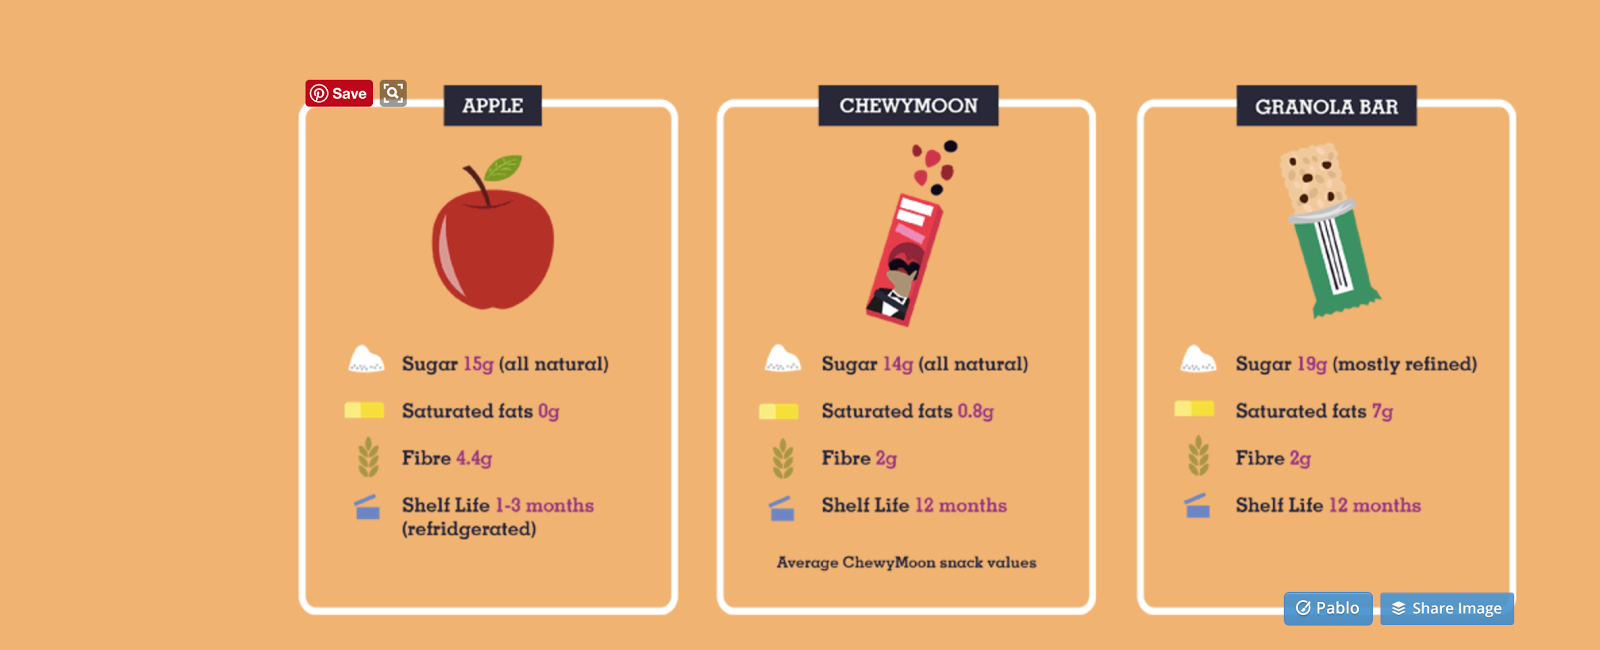 ChewyMoon nutritional statistics - how do their snacks compare?